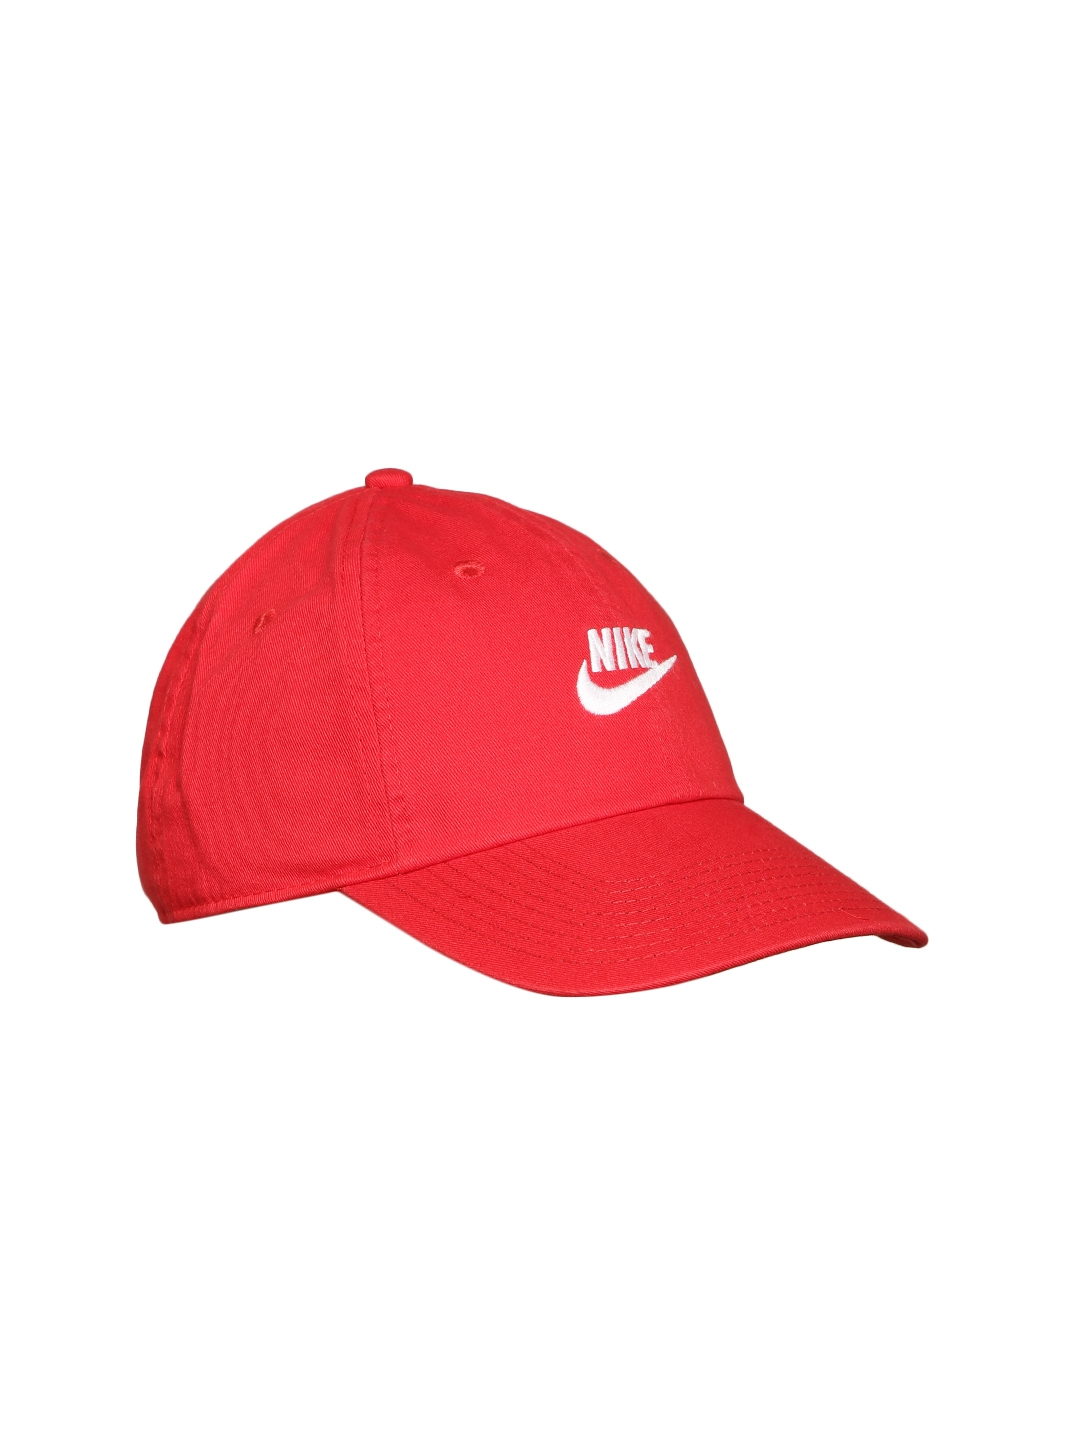 huge selection of 37a74 9d3bd Nike Unisex Red NSW H86 Futura Washed Solid Cap